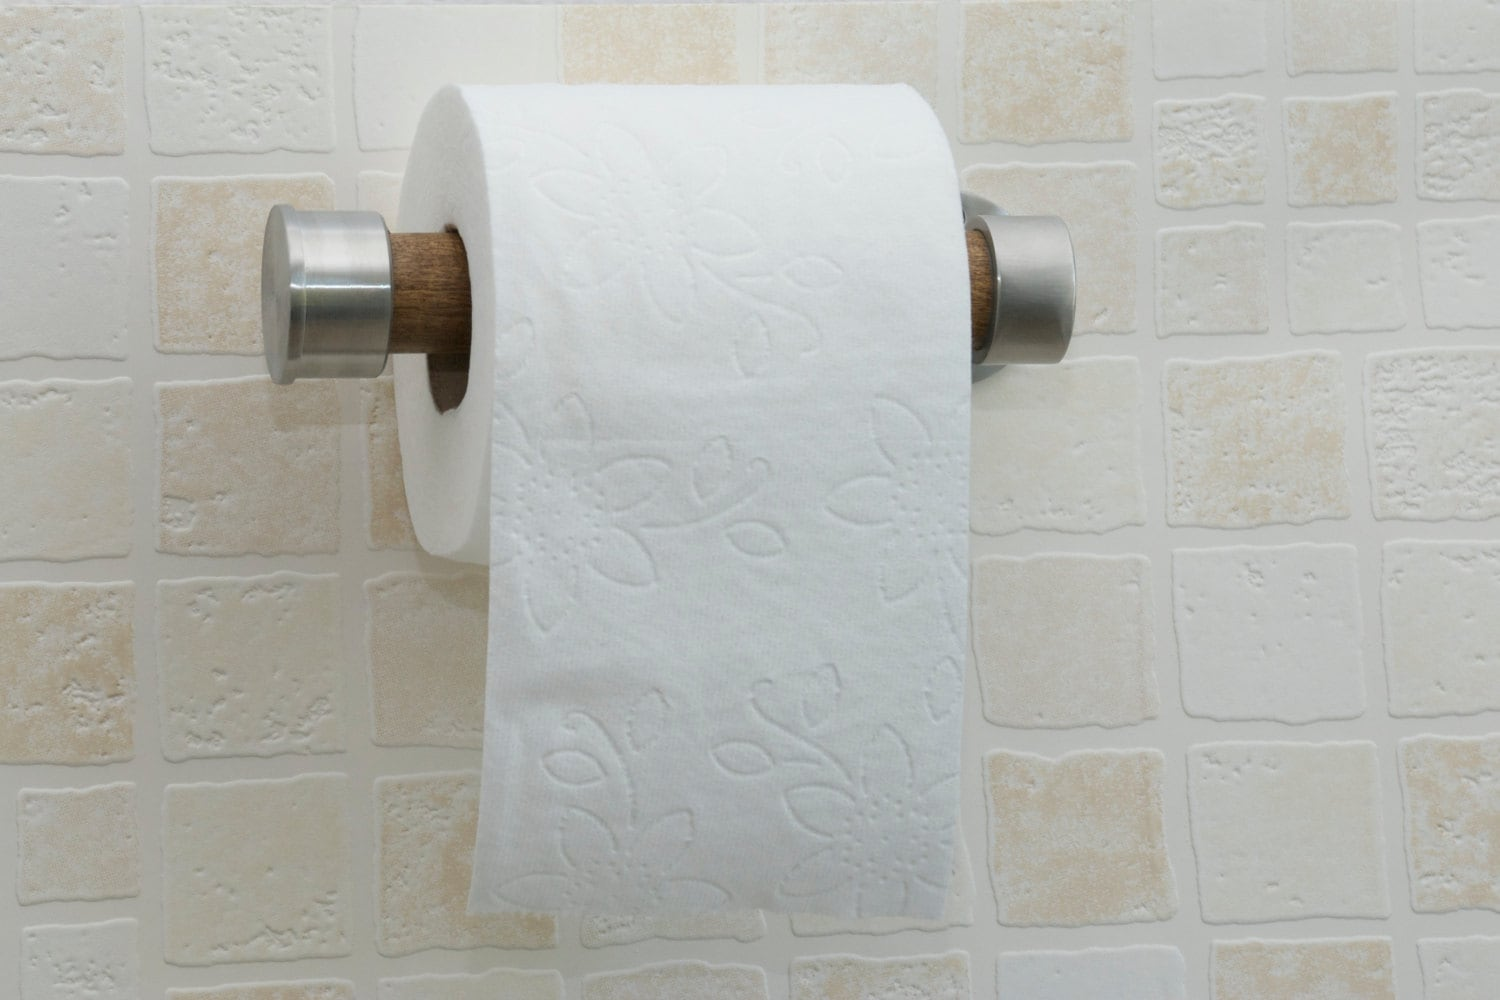 Brushed Stainless Steel And Poplar Toilet Paper Holder